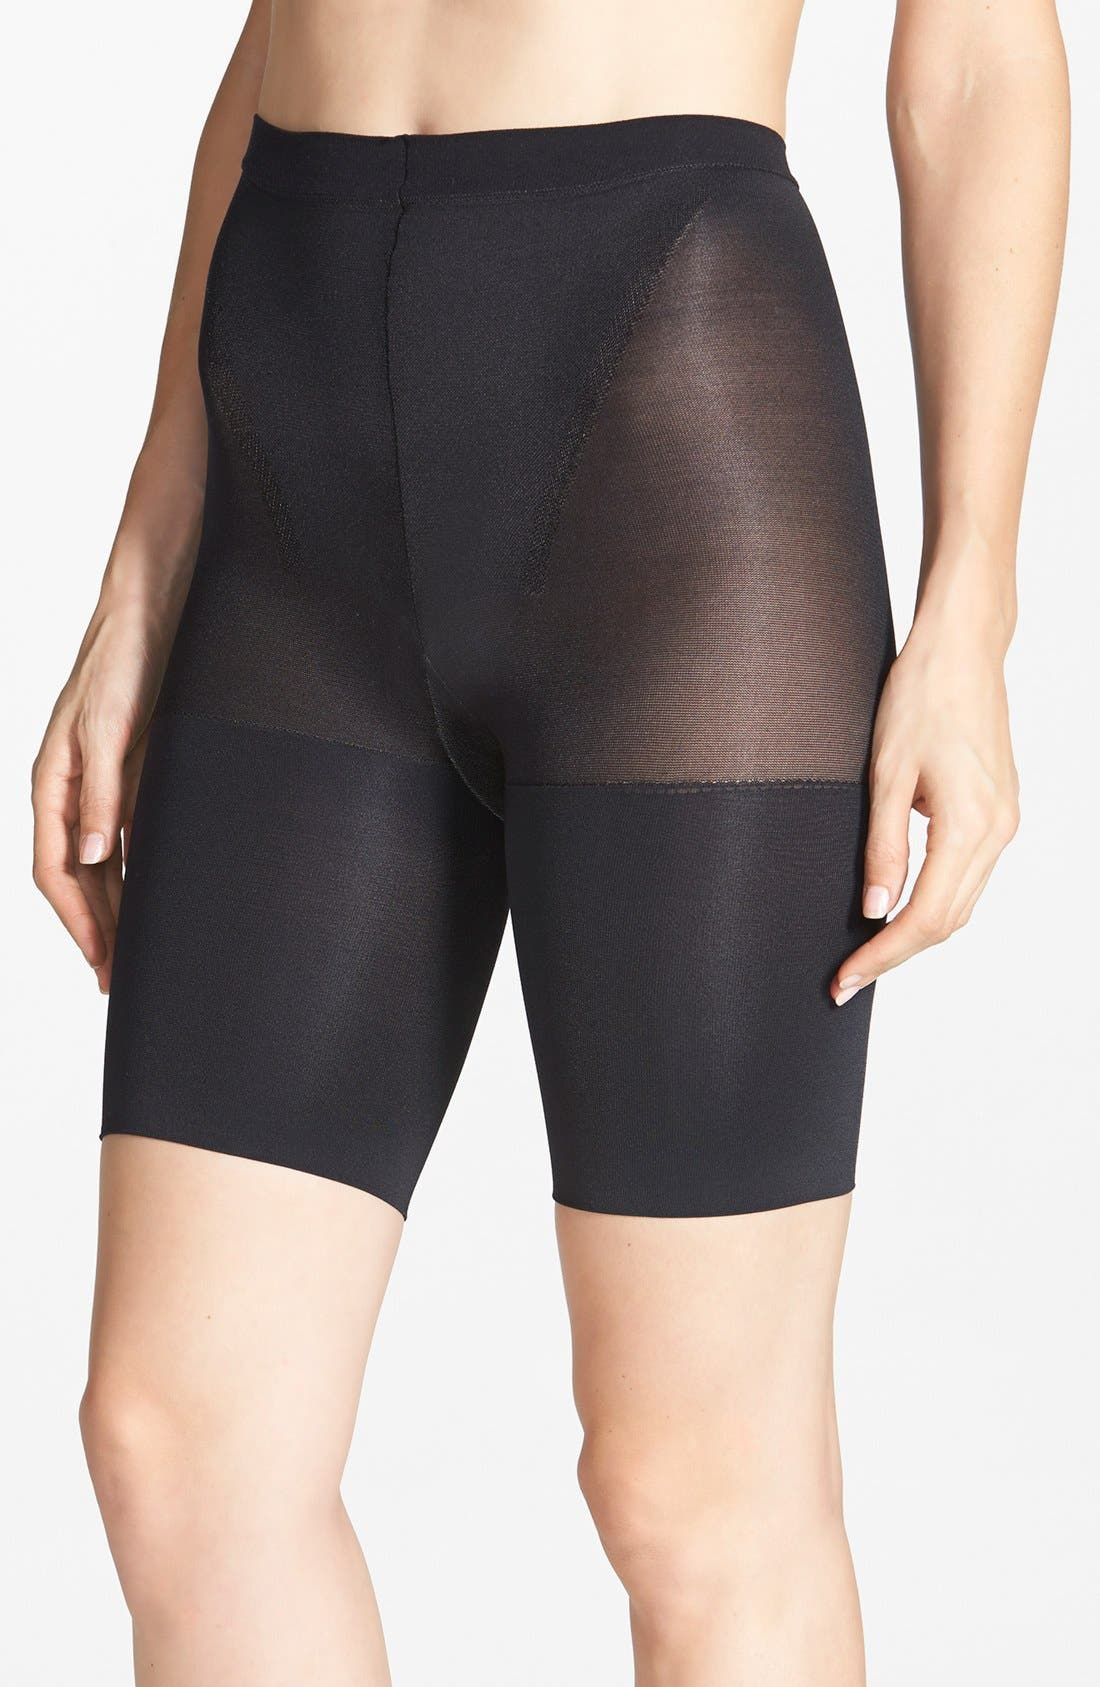 Alternate Image 1 Selected - SPANX® 'In-Power Line' Super Power Panties Mid Thigh Shaper (Regular & Plus Size)